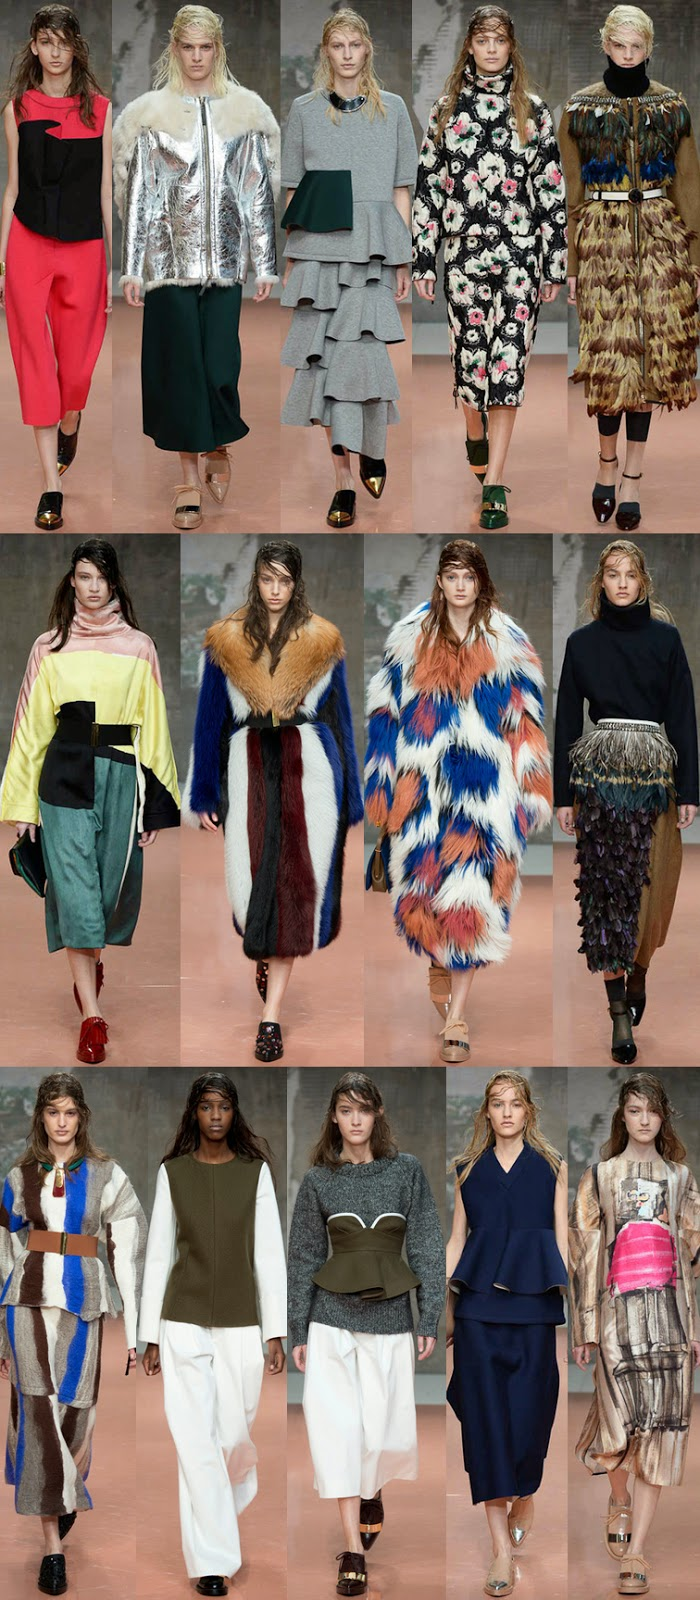 Marni fall winter 2014 runway collection, FW14, AW14, MFW, Milan fashion week